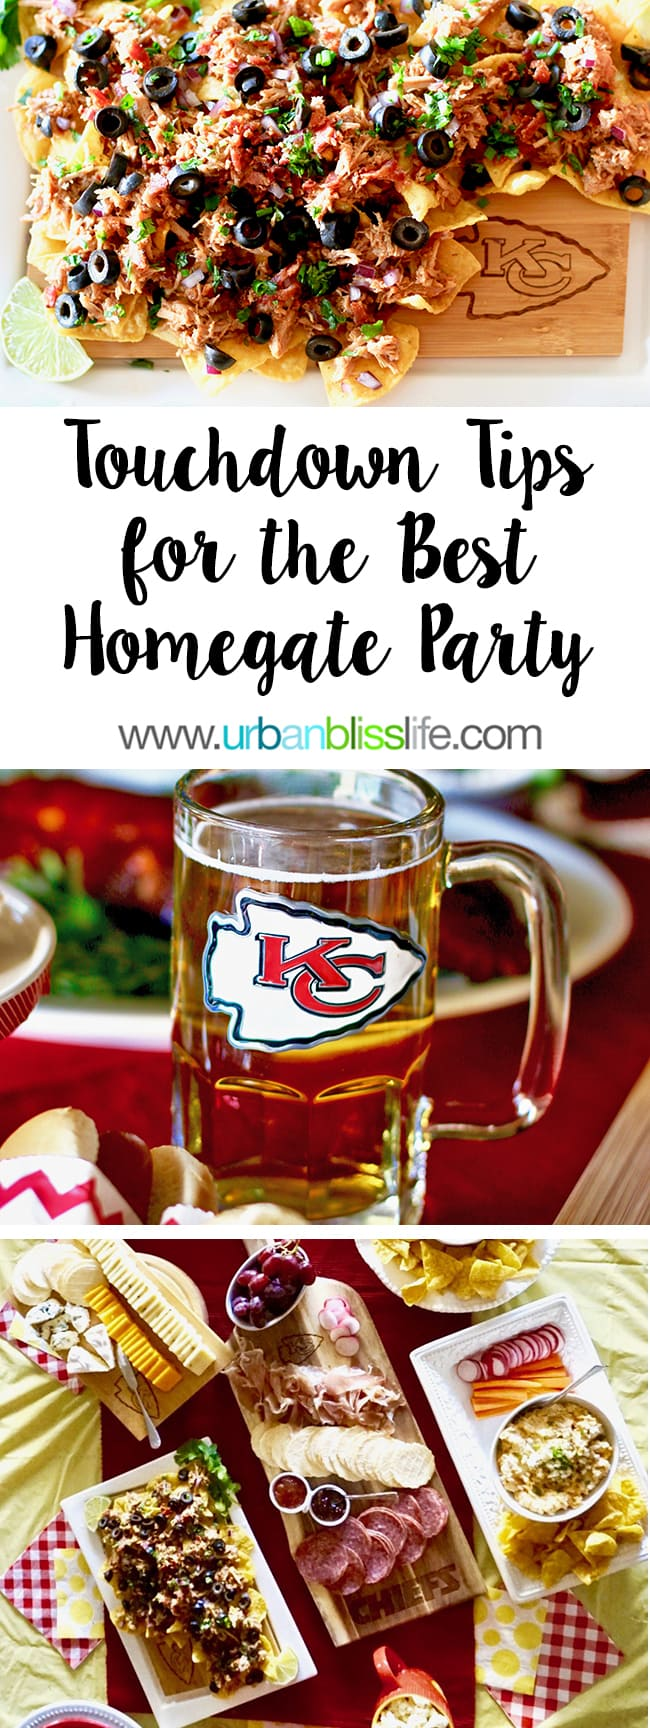 NFL Homegate Party tips